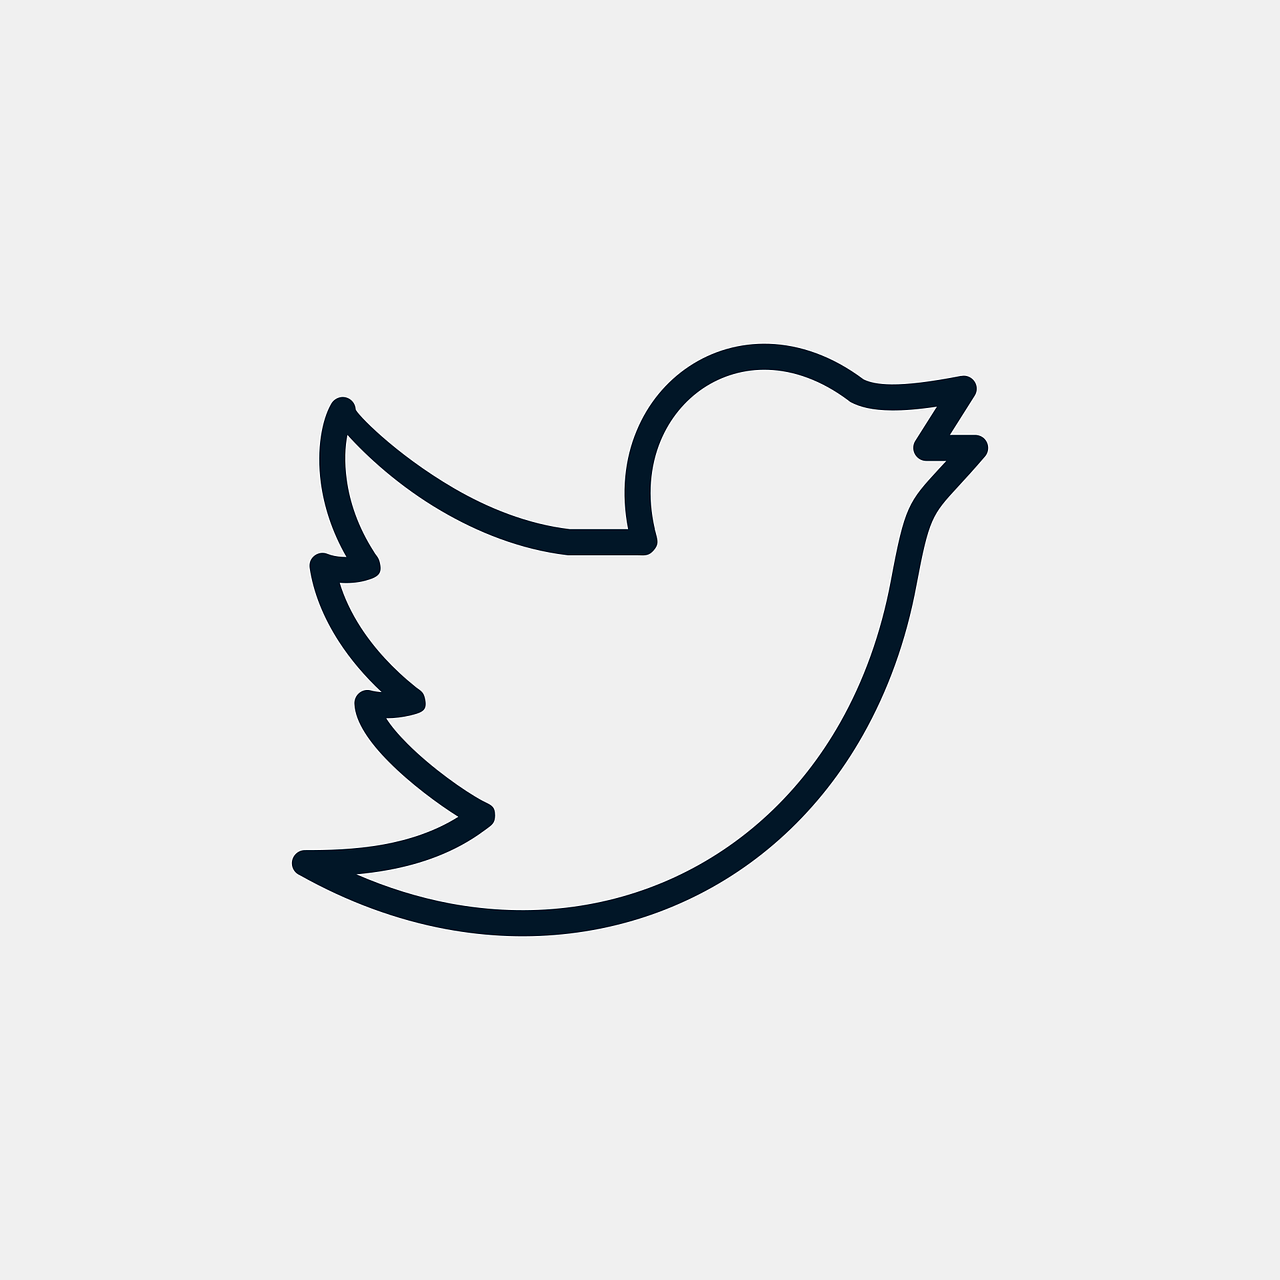 8 Tips to Boost Your Twitter Campaign (For Free!)